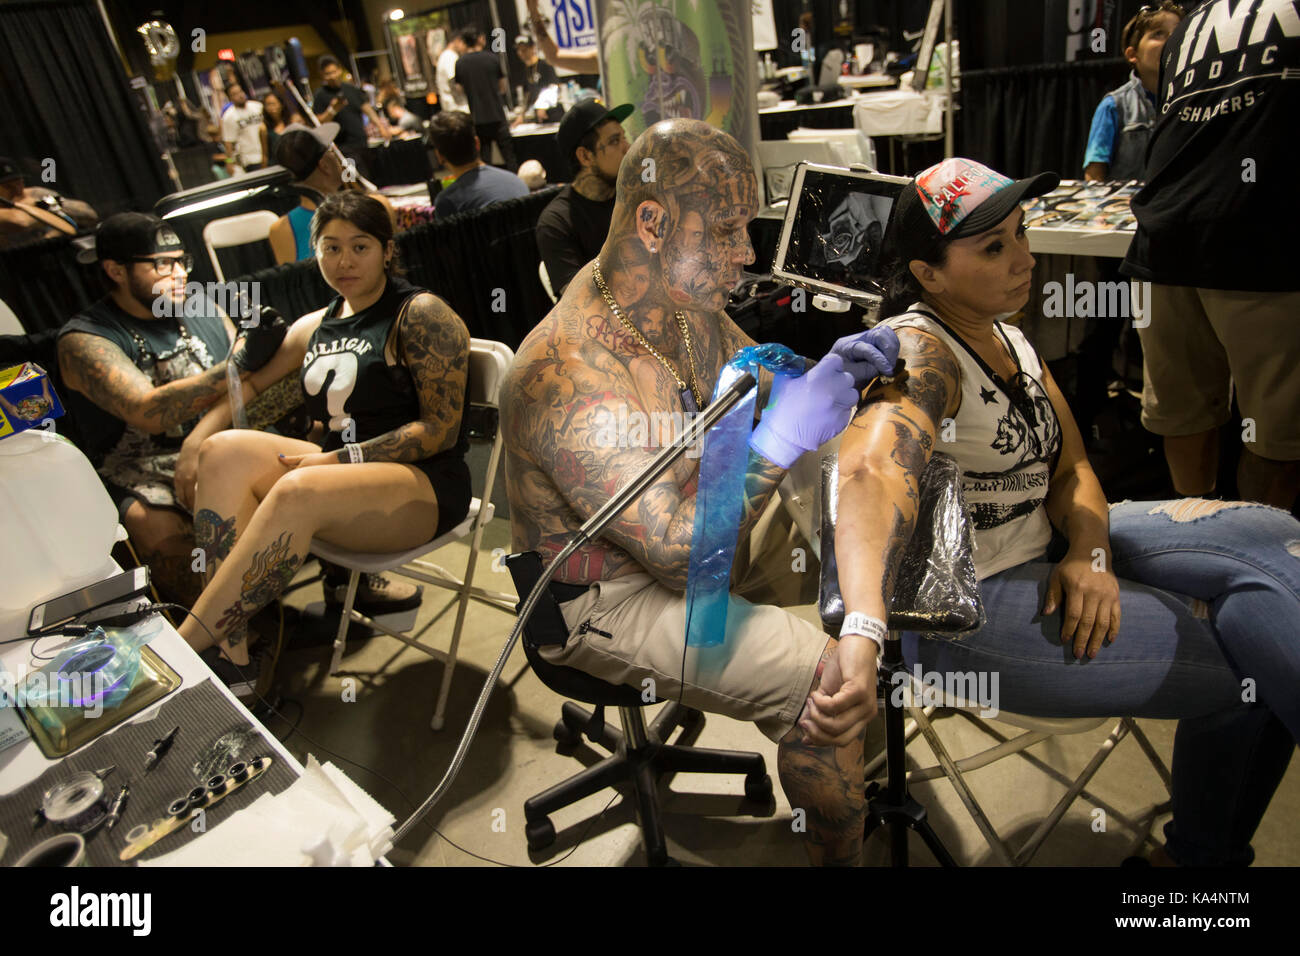 Long beach convention center long stock photos long for Tattoo convention los angeles